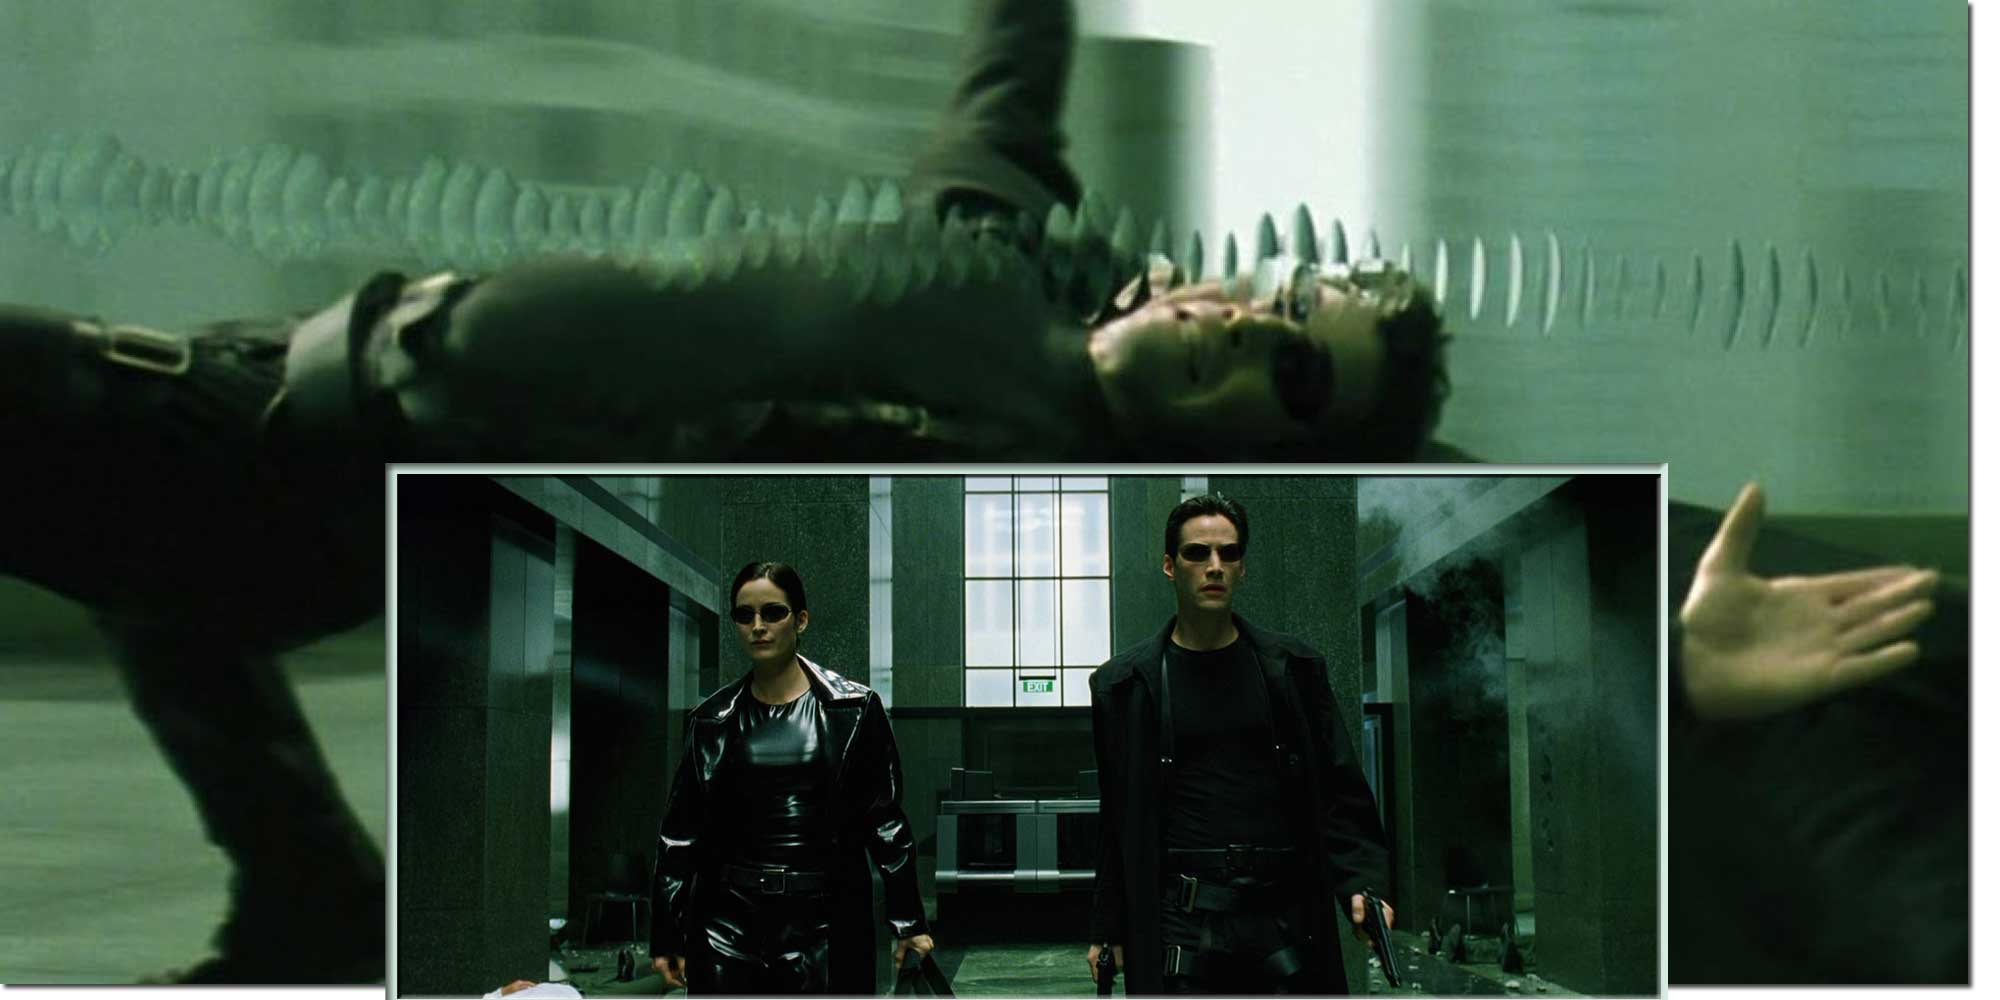 characterization of neo from the movie the matrix The word matrix originated in the 15th century, according to the oxford english dictionary (oed), and referred to the womb (echoing the womb-like pods neo and the others are kept in.